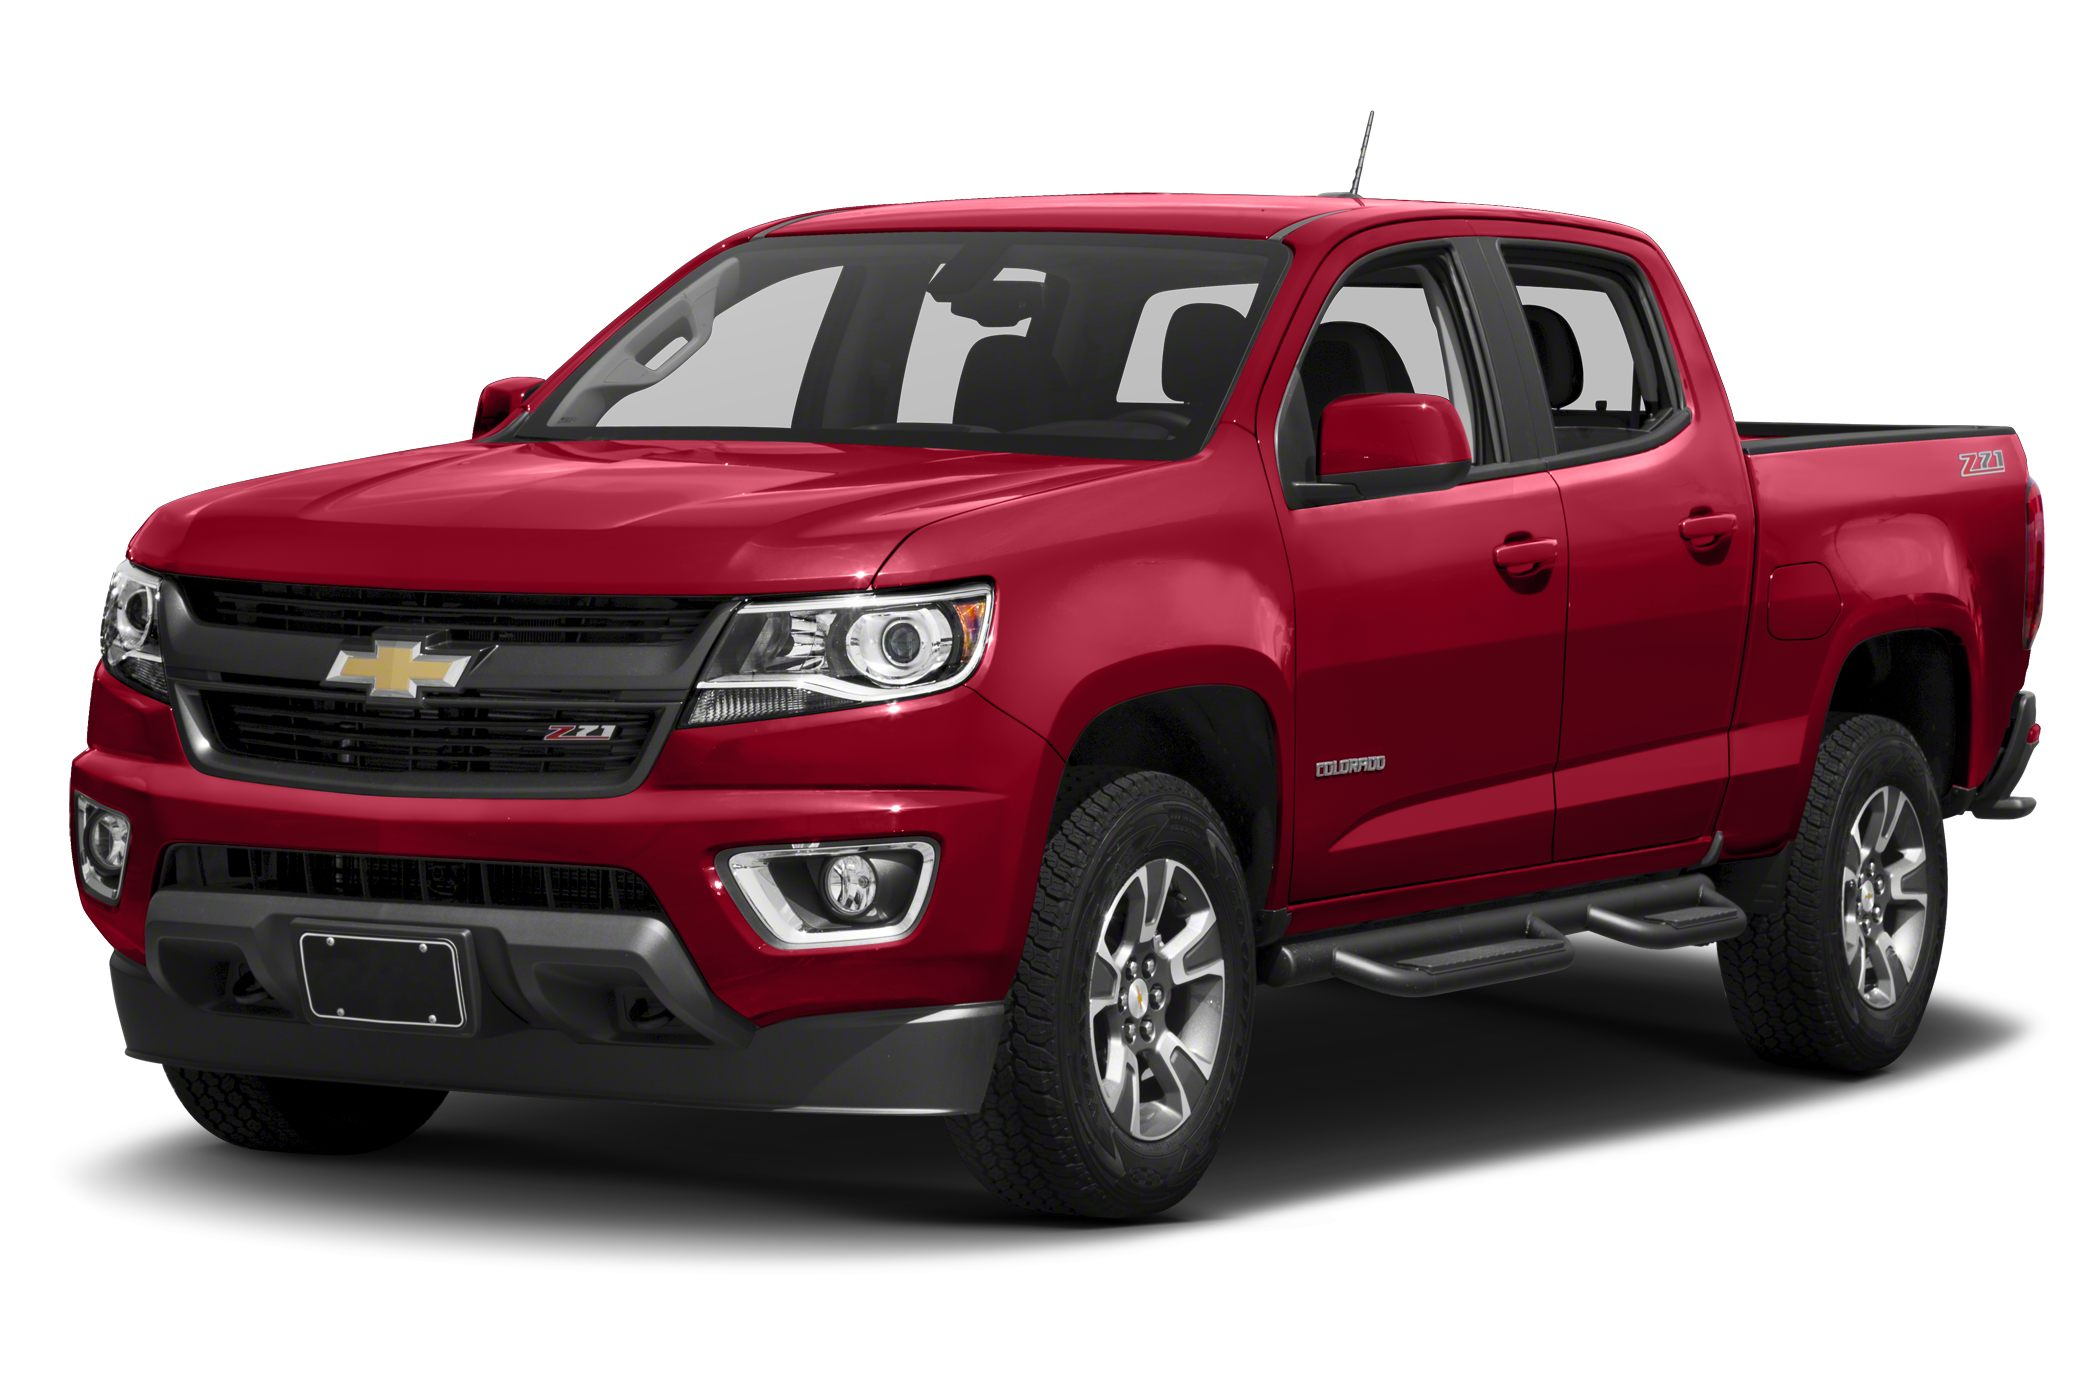 2018 Chevrolet Colorado Z71 Steel Metallic 2018 Chevrolet Colorado Z71 4WD 8-Speed Automatic V6 Re